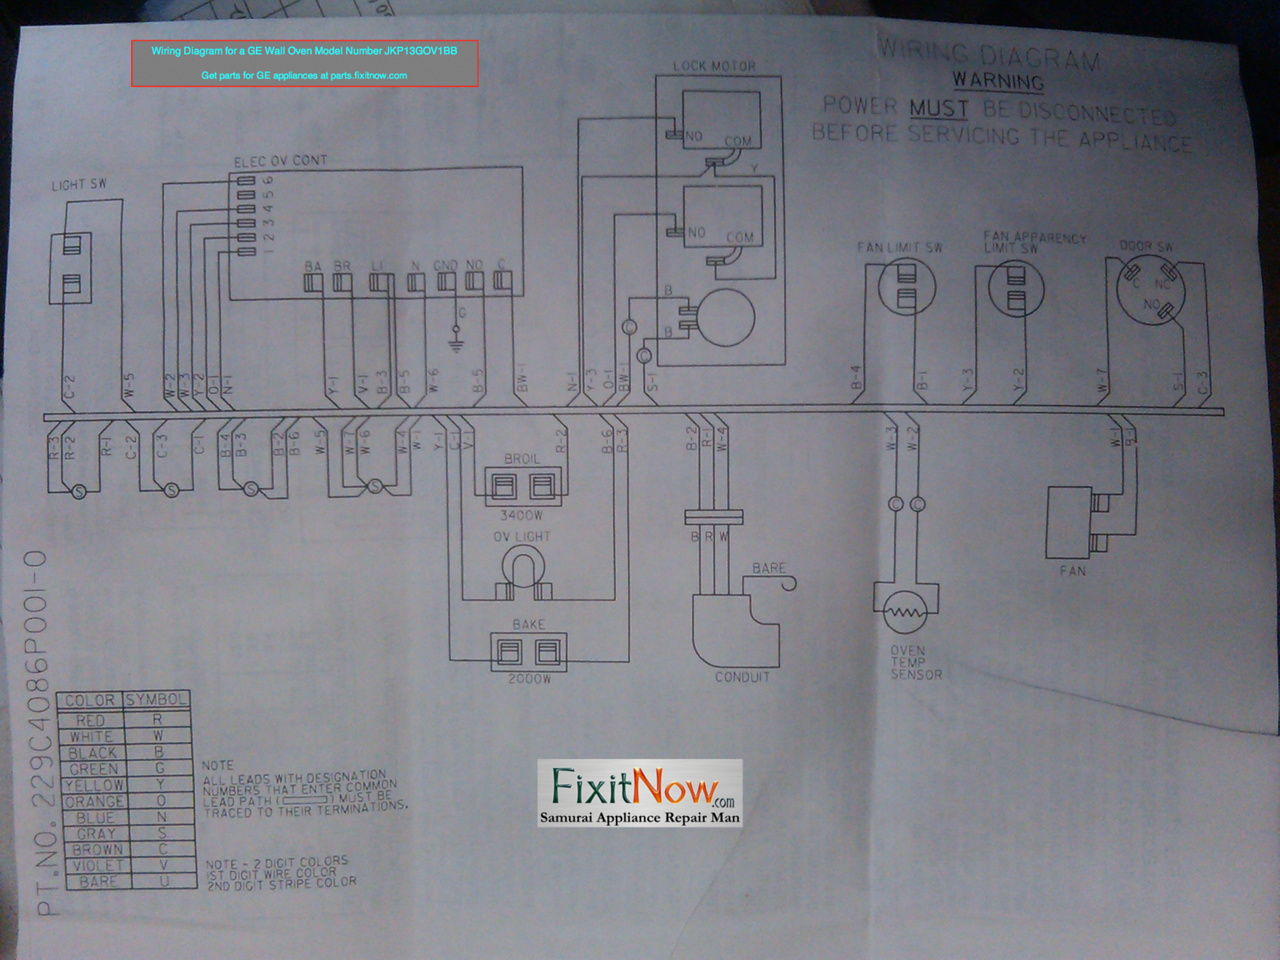 Wiring Diagrams And Schematics Appliantology. Wiring Diagram For A Ge Wall Oven Model Number Jkp13gov1bb. Wiring. Stove Ladder Wiring Diagram At Scoala.co